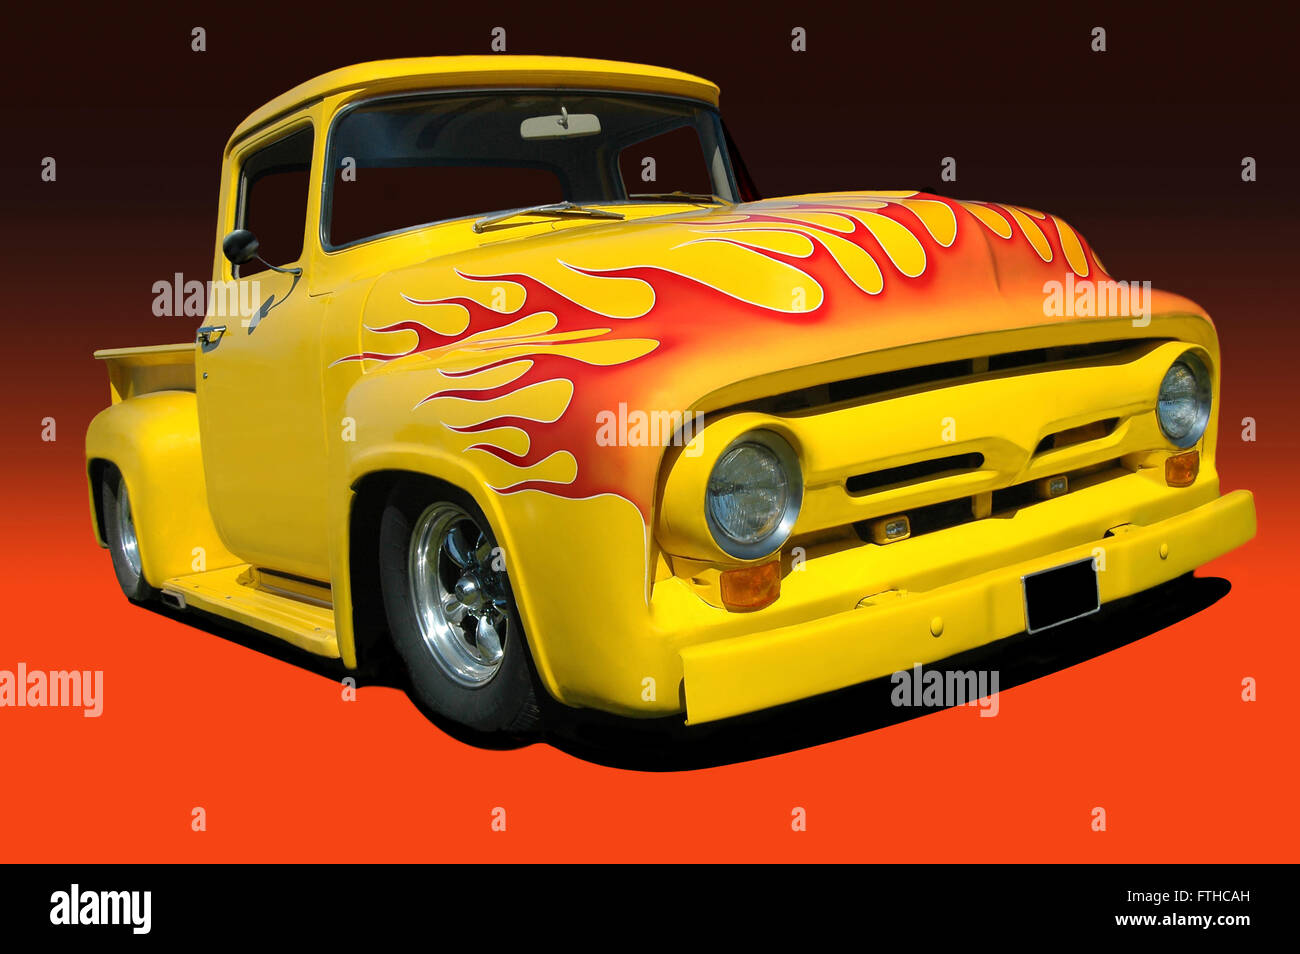 hight resolution of yellow 1956 ford f100 pickup orange flames on hood black and orange background